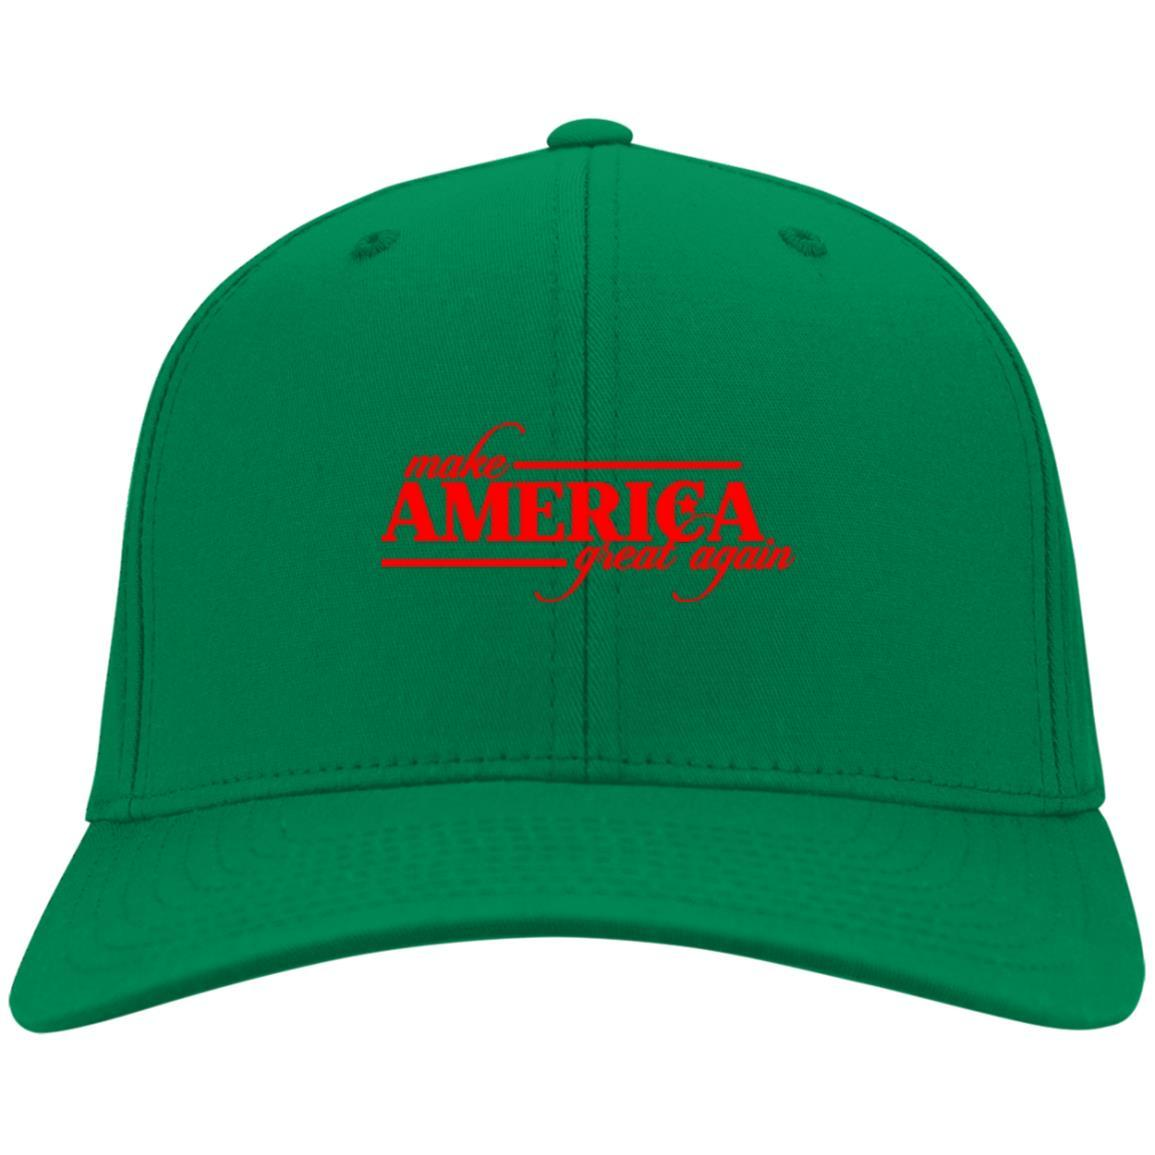 Make America Great Again - Port & Co. Twill Cap Kelly Green